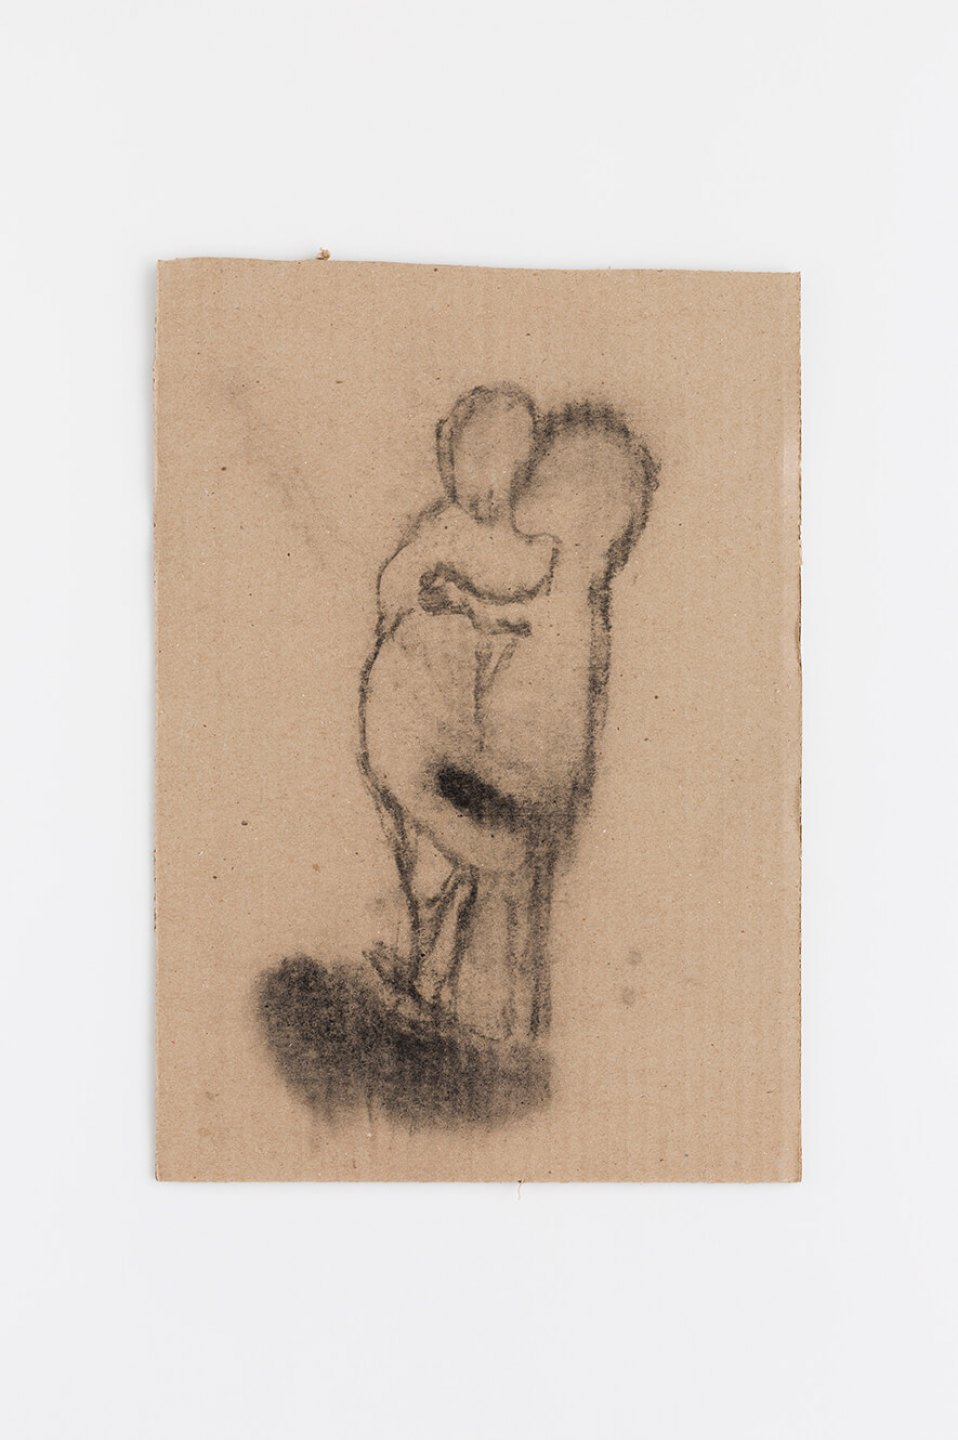 Solange Pessoa, <em>untitled</em>, 2009, pastel on cardboard, 31,3 × 21,8 cm - Mendes Wood DM